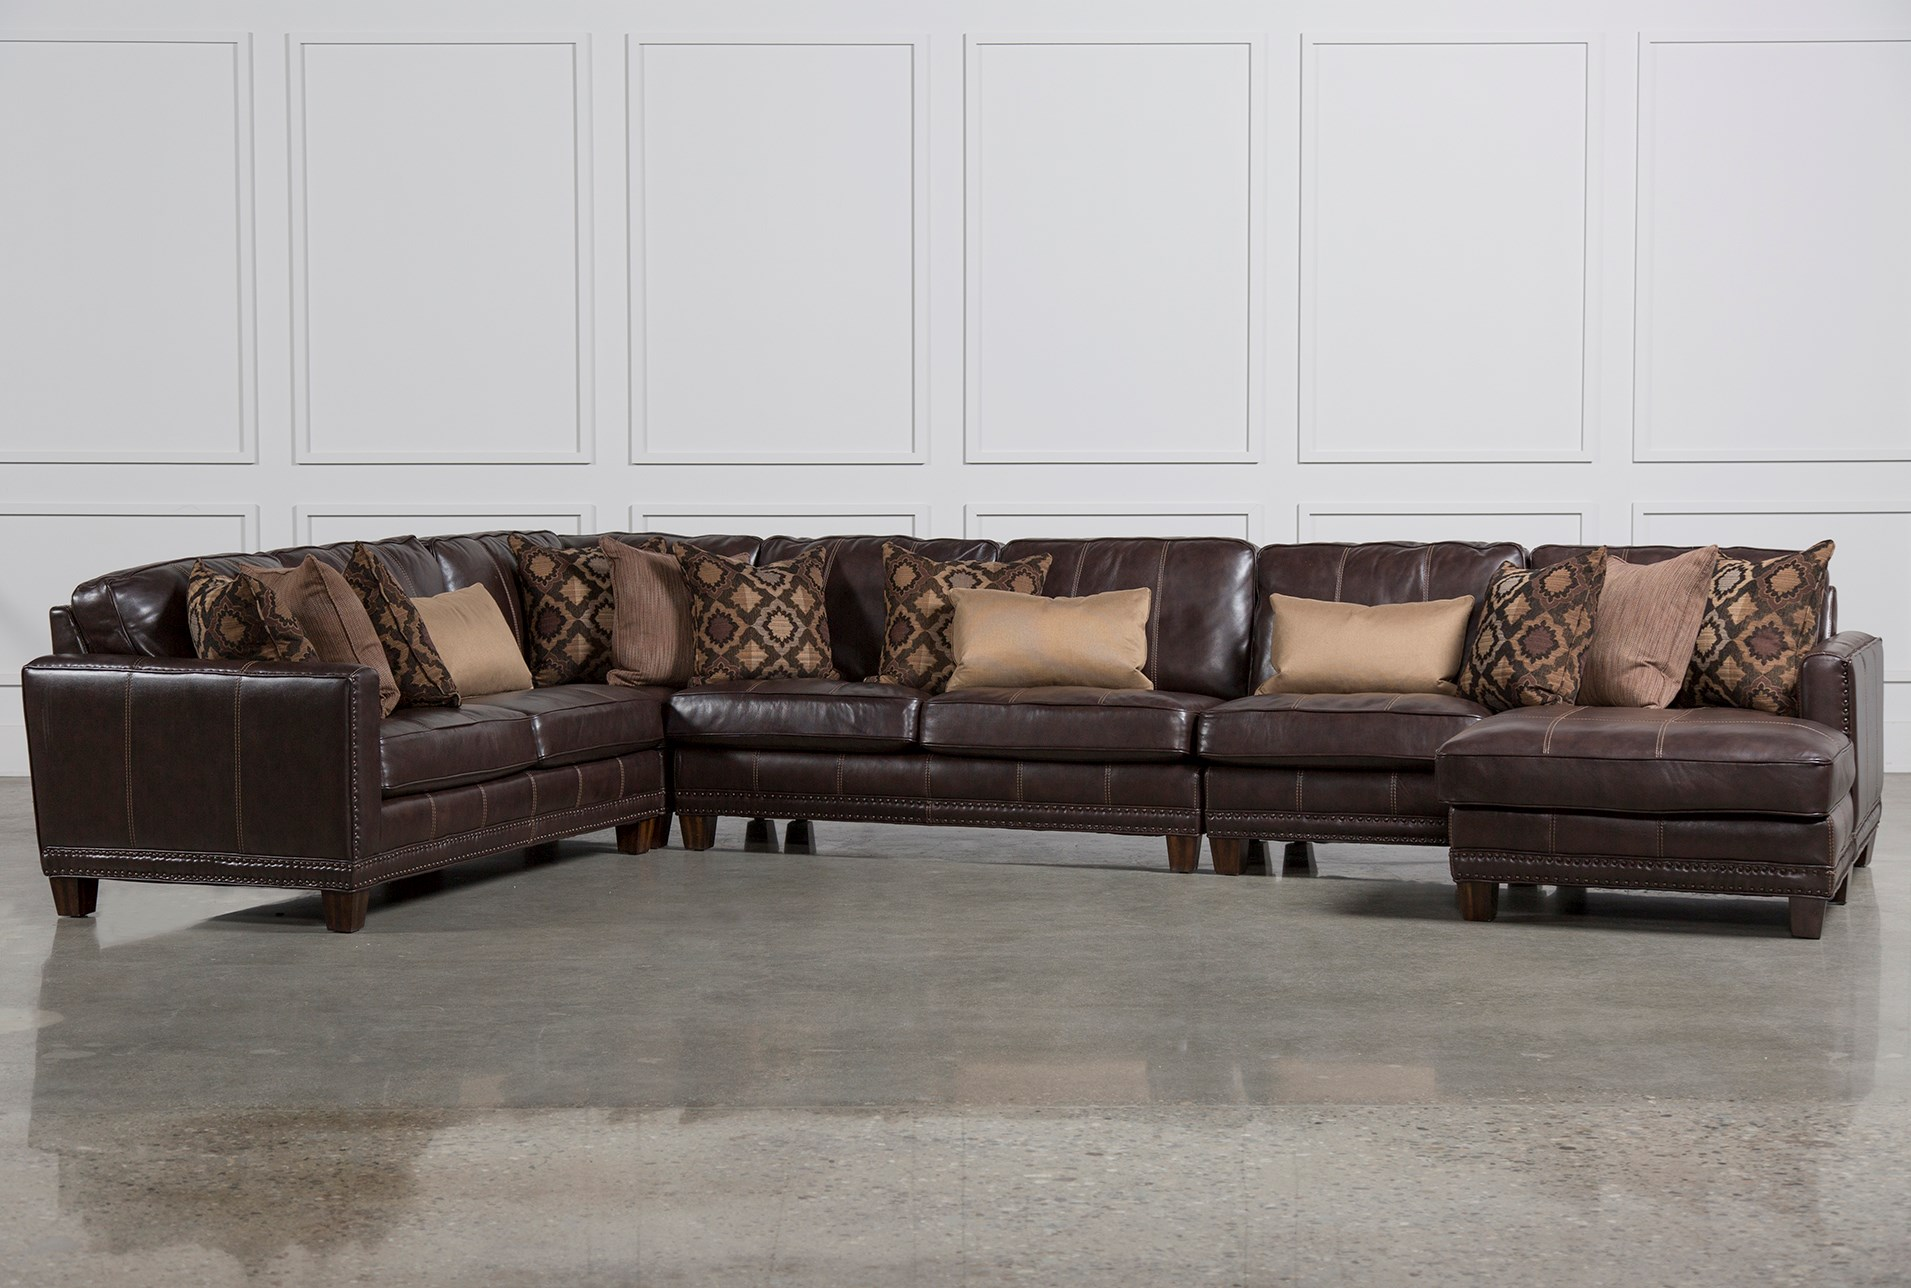 Barnaby 5 Piece Sectional W Raf Chaise Qty 1 Has Been Successfully Added To Your Cart